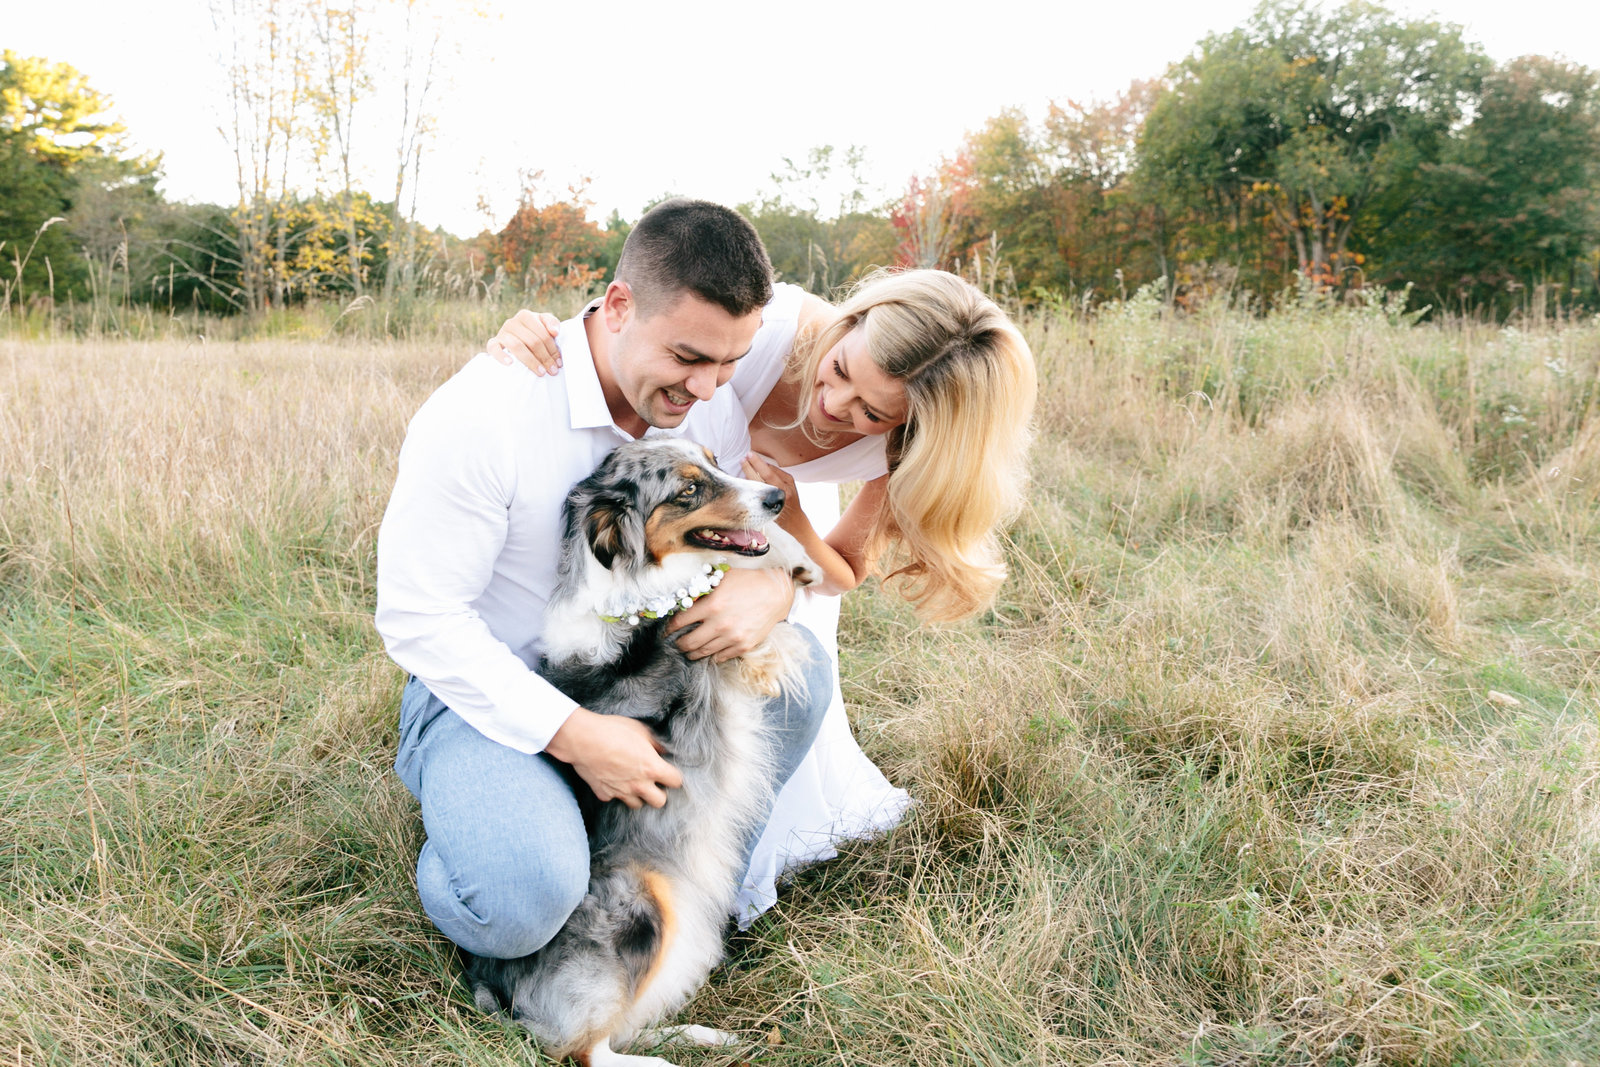 birchwold-farm-engagement-photography-wrentham-massachusetts0269